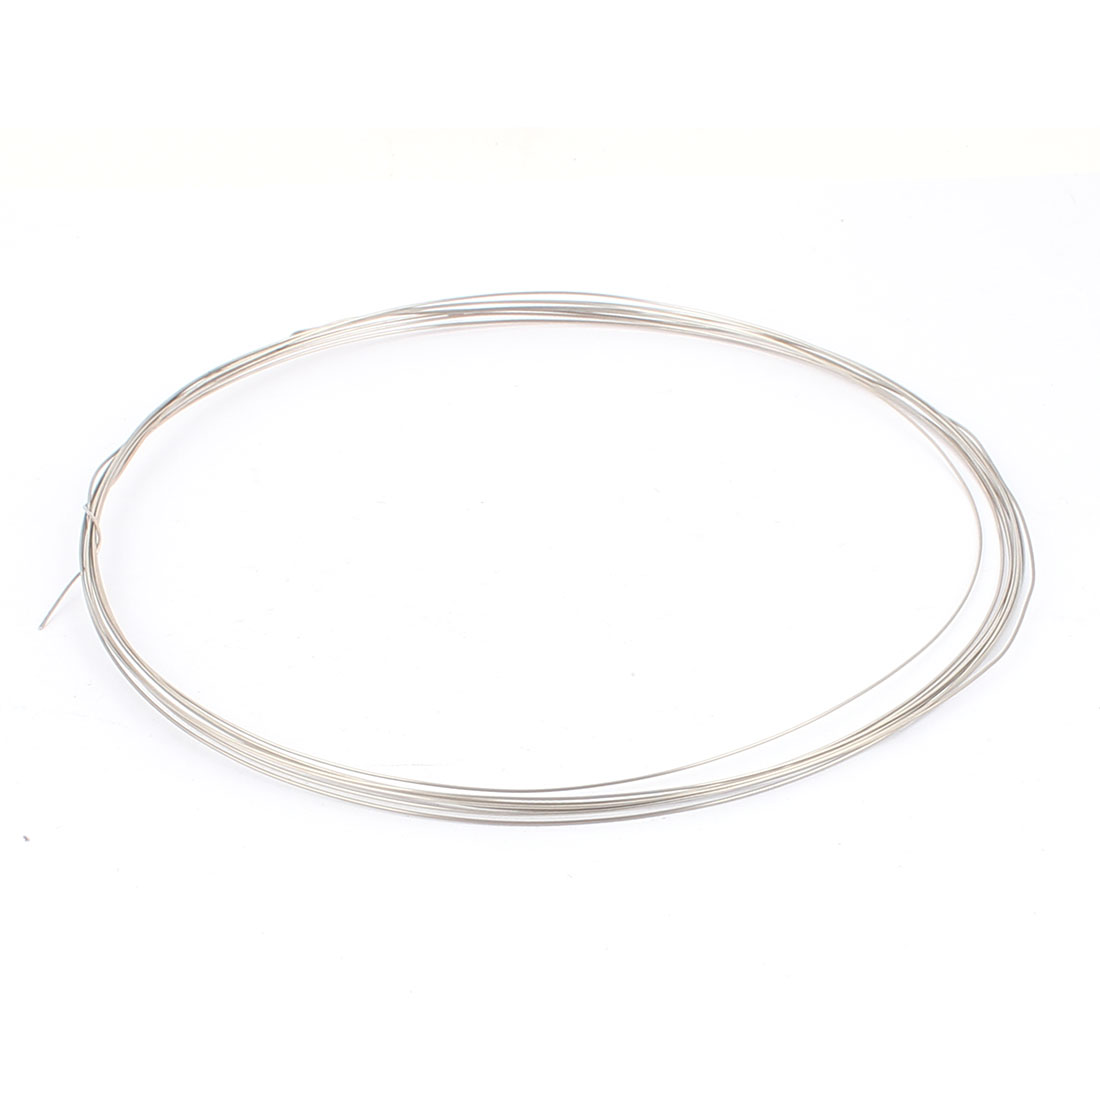 Uxcell 5M Length Constantan Heating Element 21Awg 0.7mm Dia Heater Wire Coil